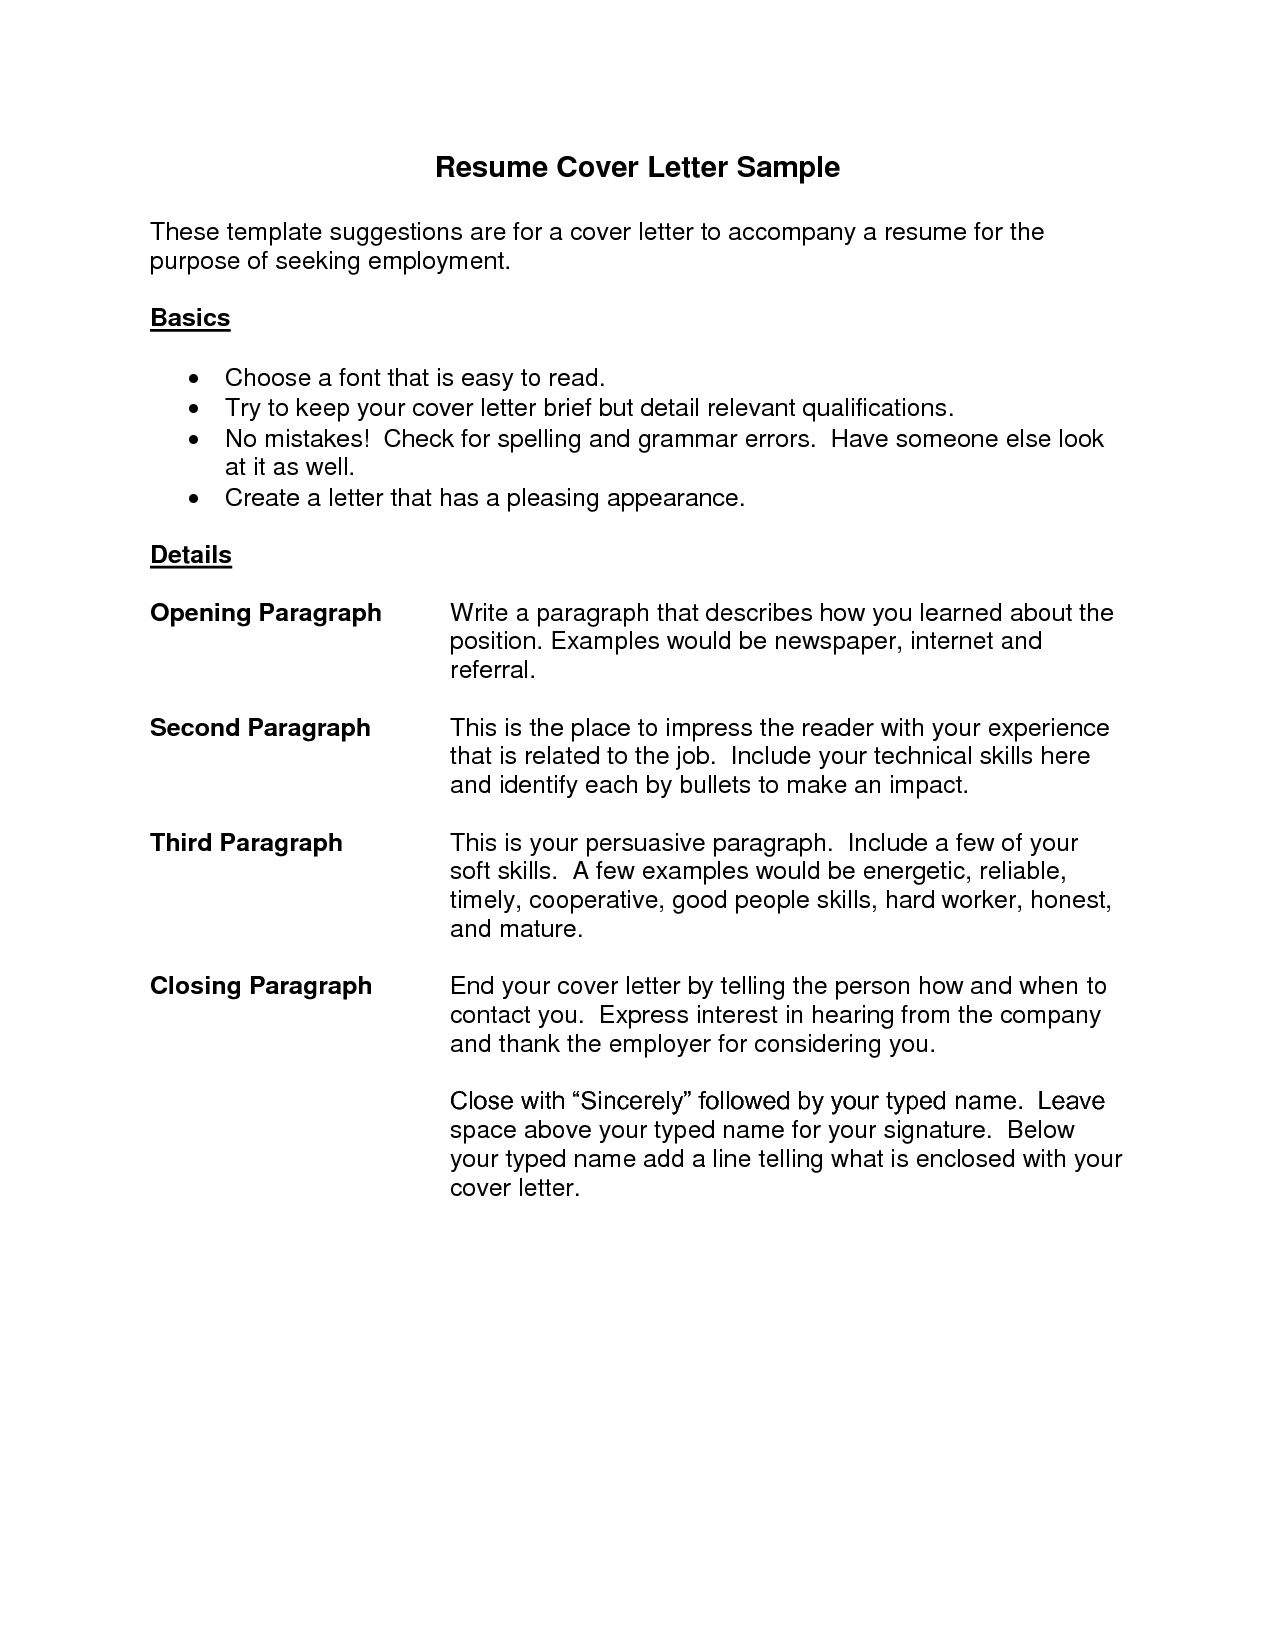 How To Do Cover Letter For Resume Cover Letter Resume Best Templatesimple Cover Letter Application .